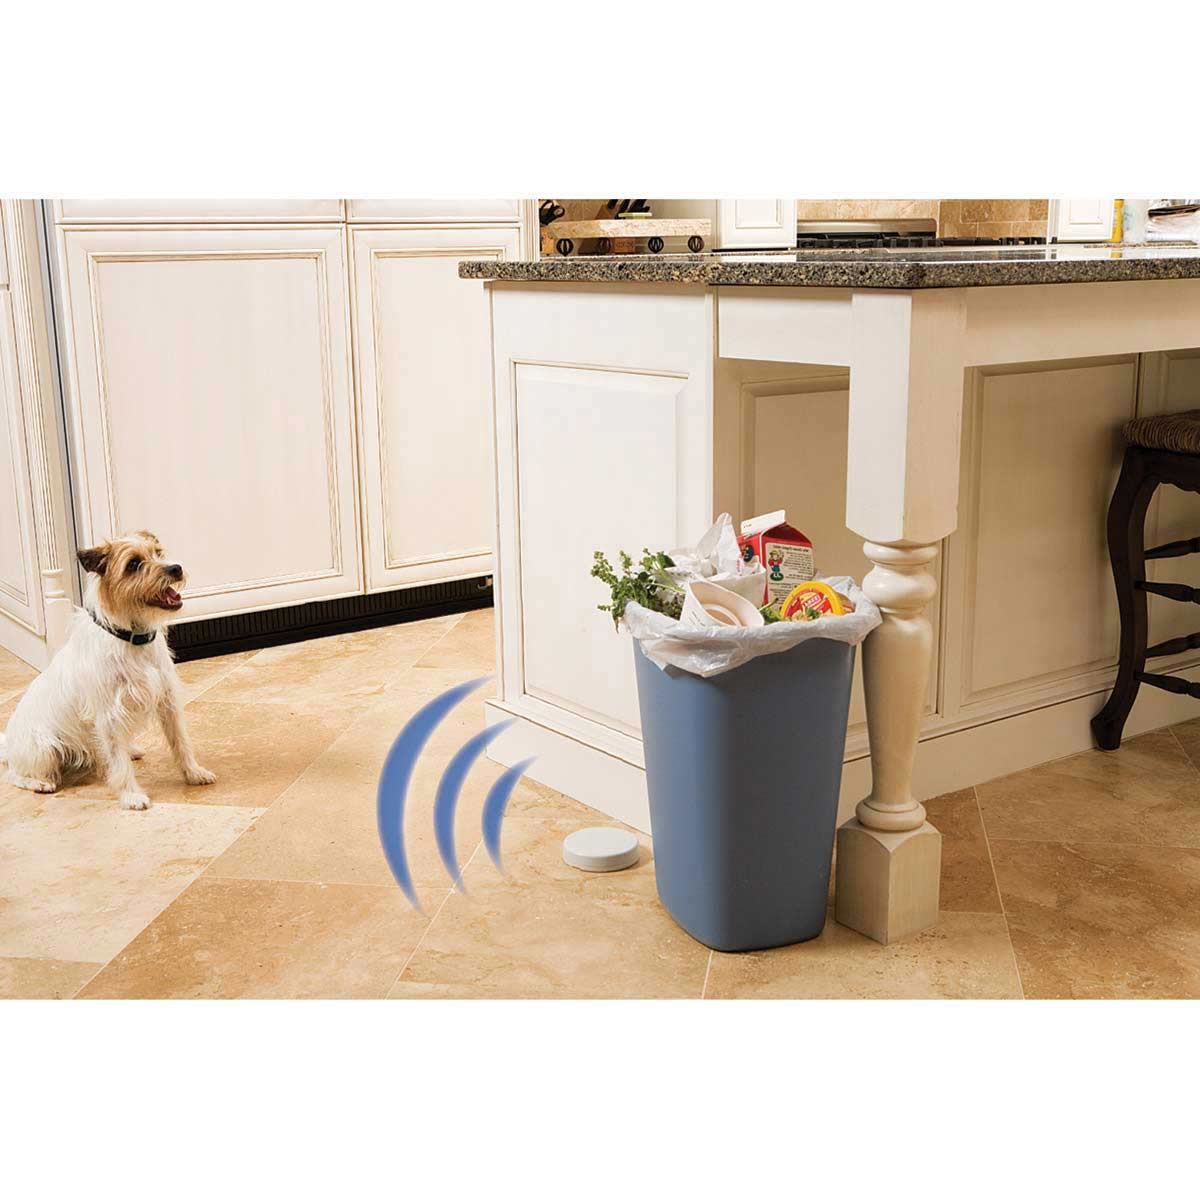 PetSafe Pawz Away Extra Indoor Barrier - Keeps Pets away from Trash and other Items